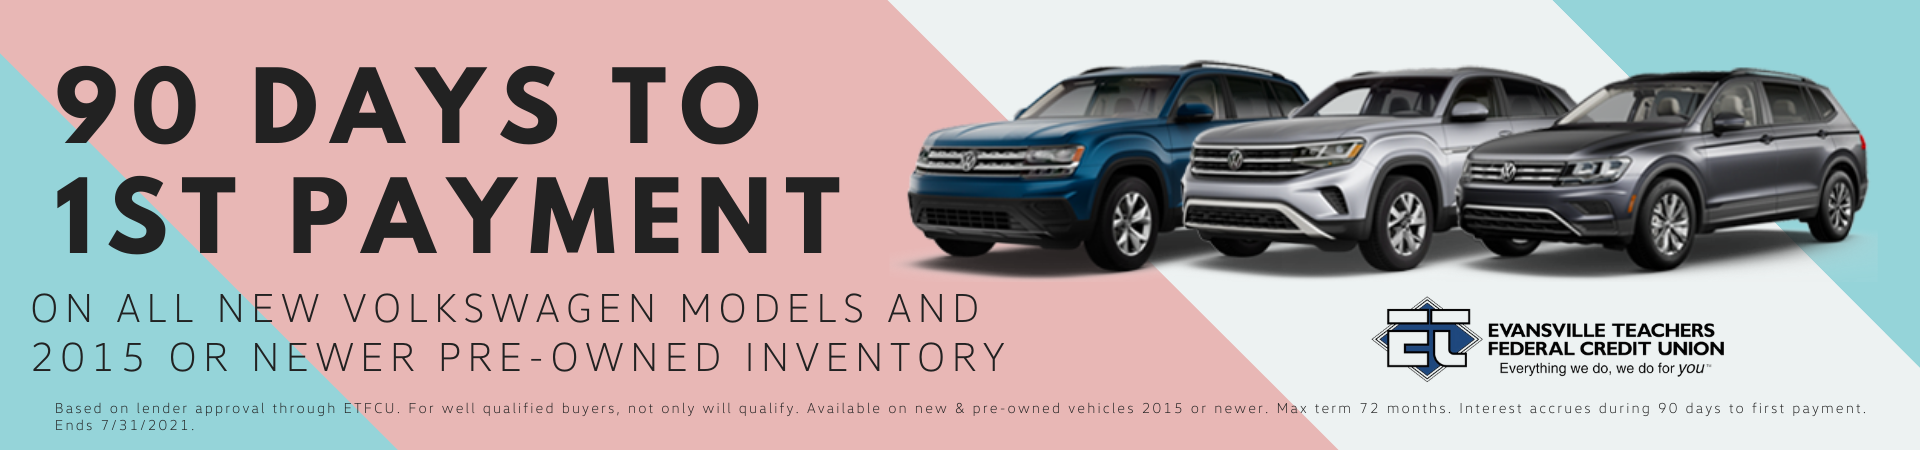 90 Day to 1st payment on all new volkswagen models or 2015 or newer pre-owned inventory with financing through Evansville Teachers Federal Credit Union